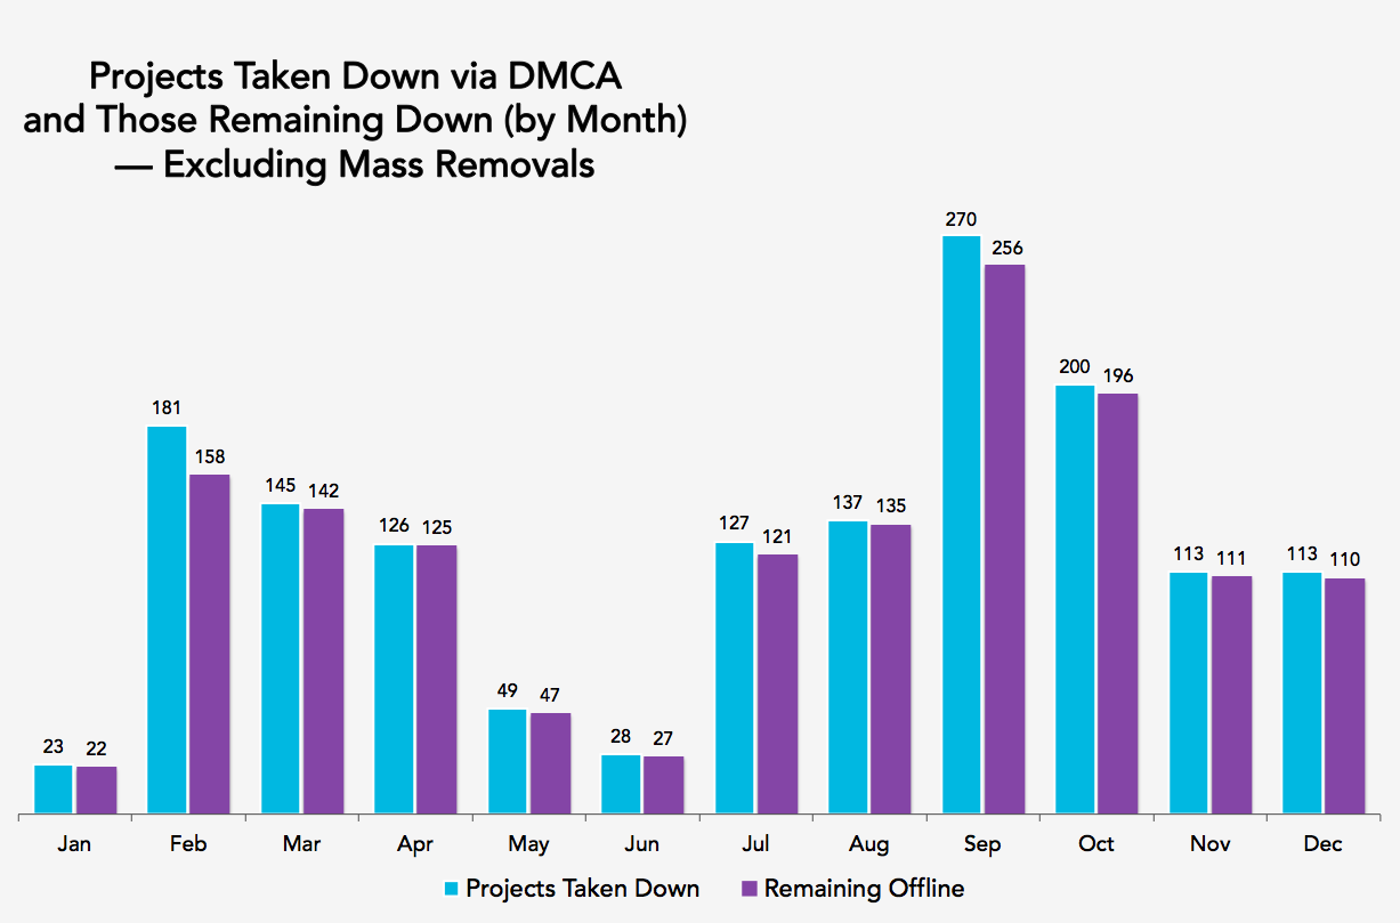 Projects Taken Down, Excluding Mass Removals - Bar Graph